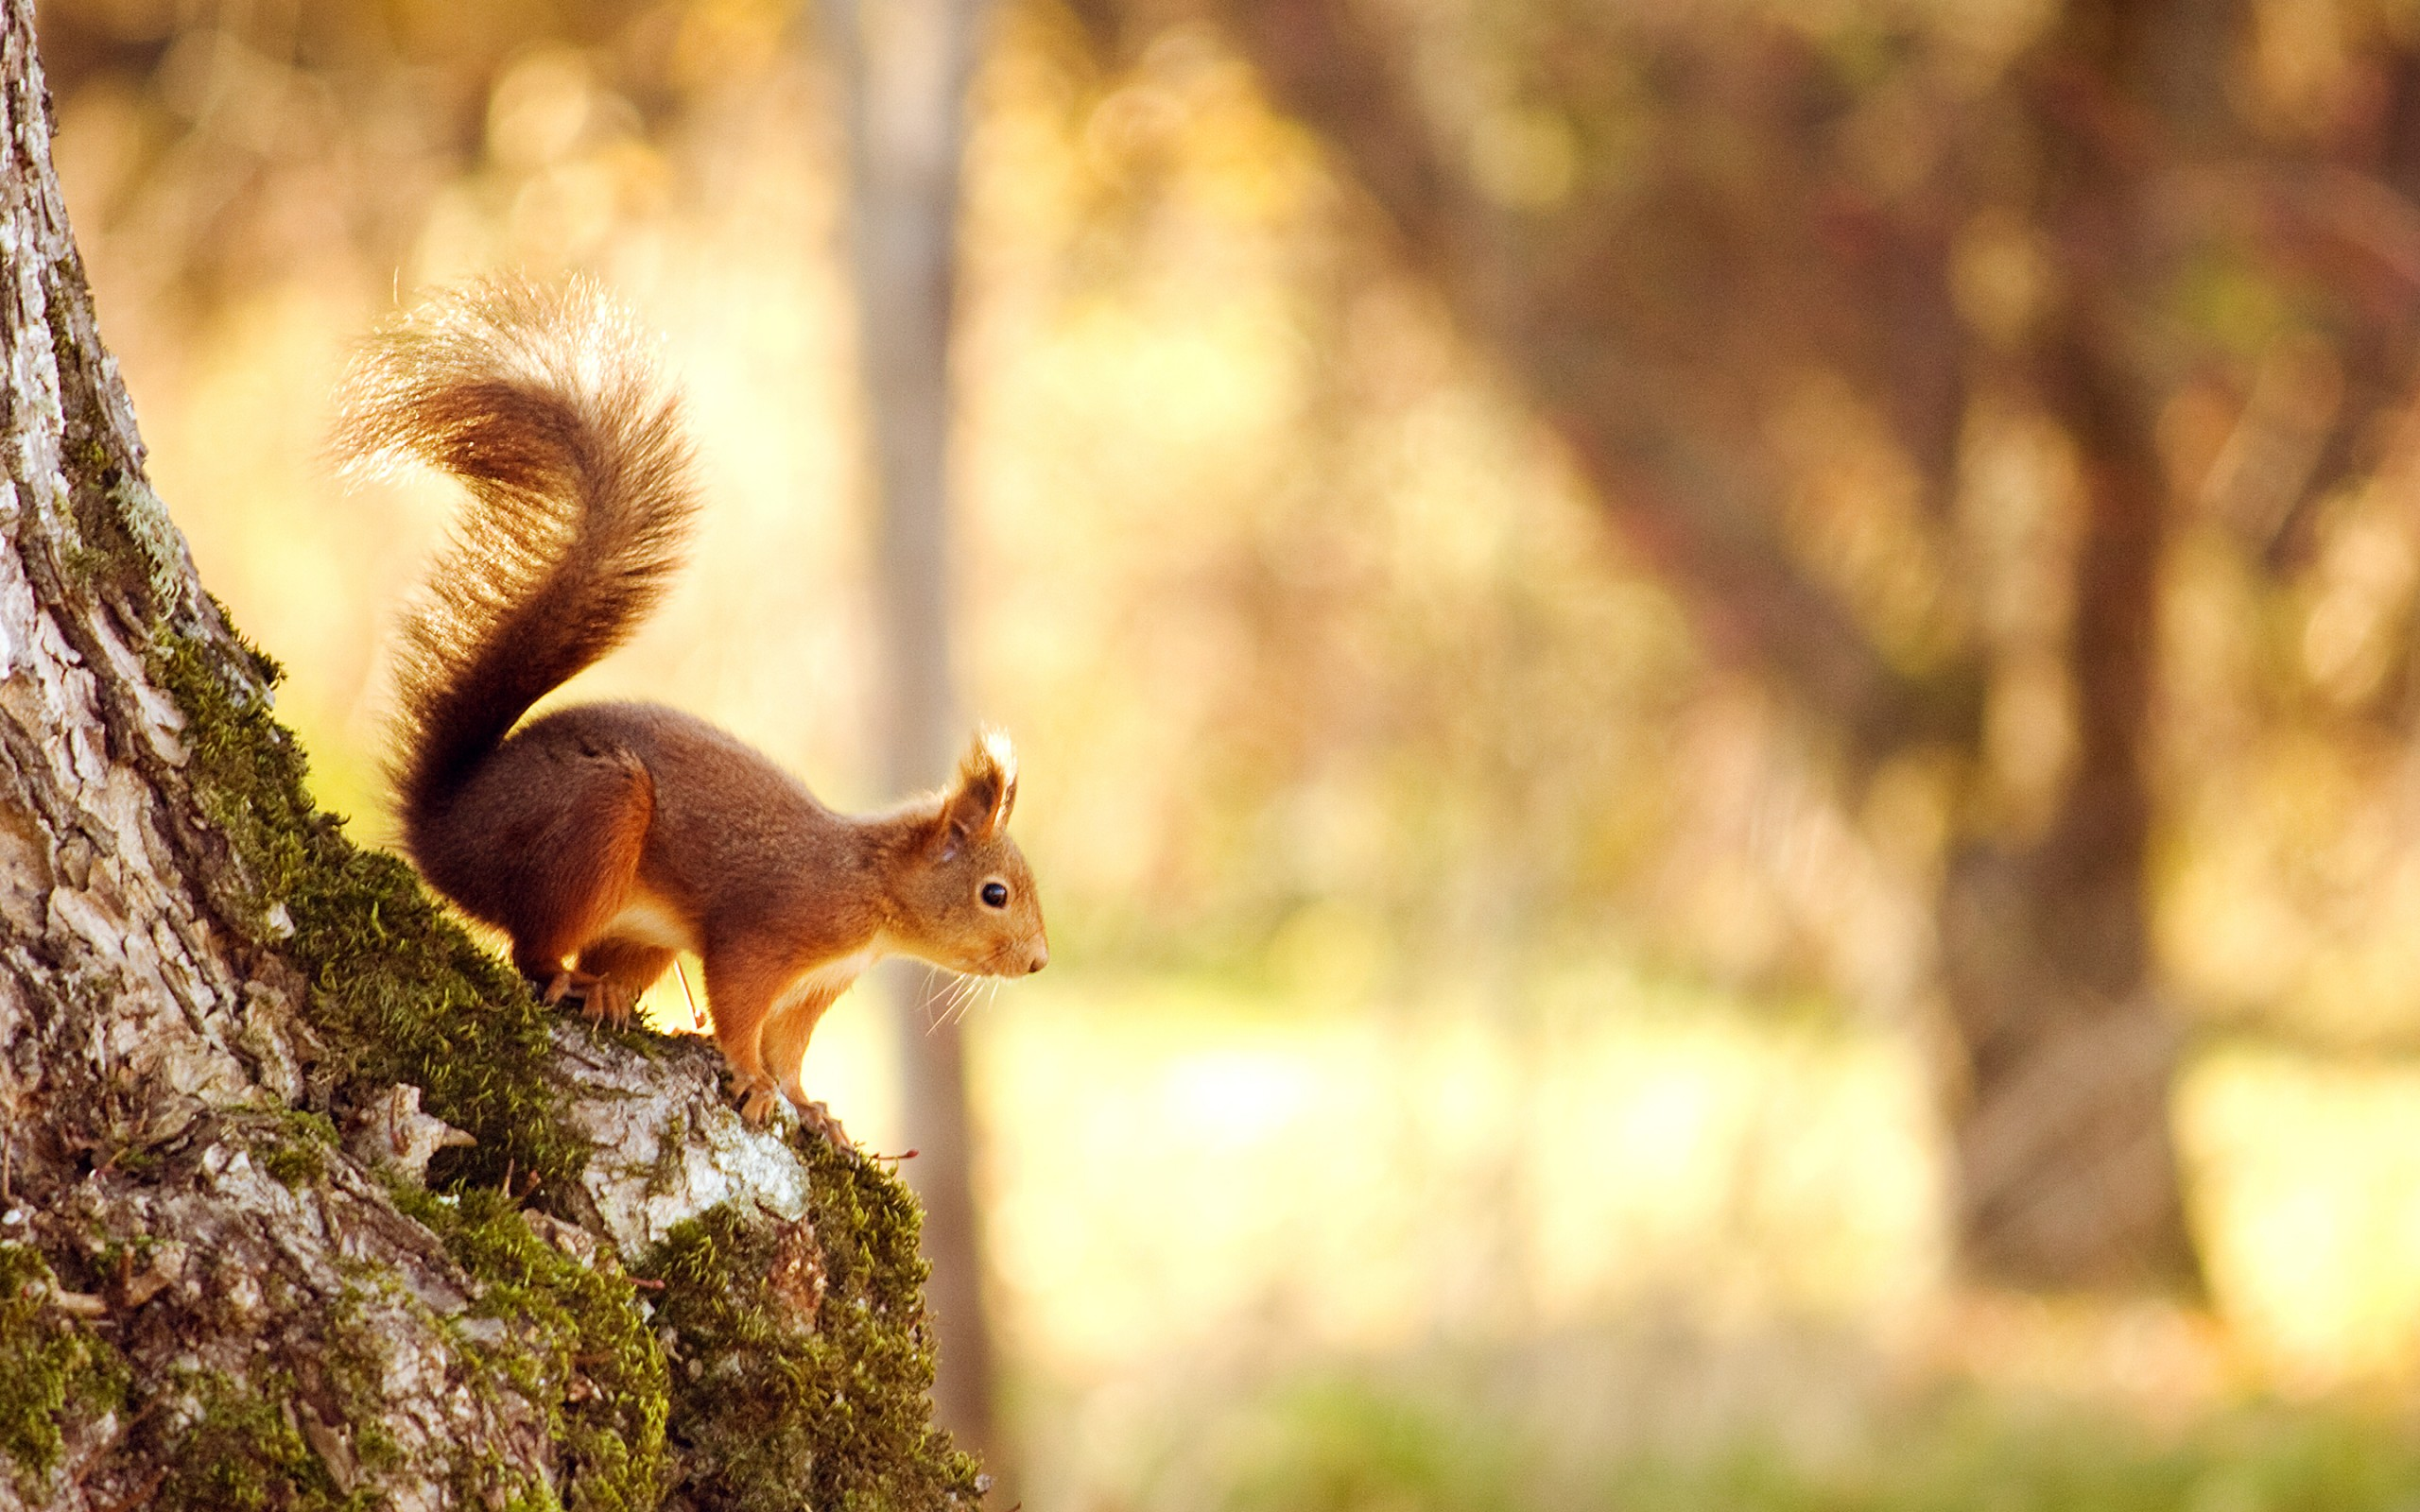 Windows 10 Wallpaper Hd Free Download Squirrel Wallpapers Hd Wallpapers Id 12329